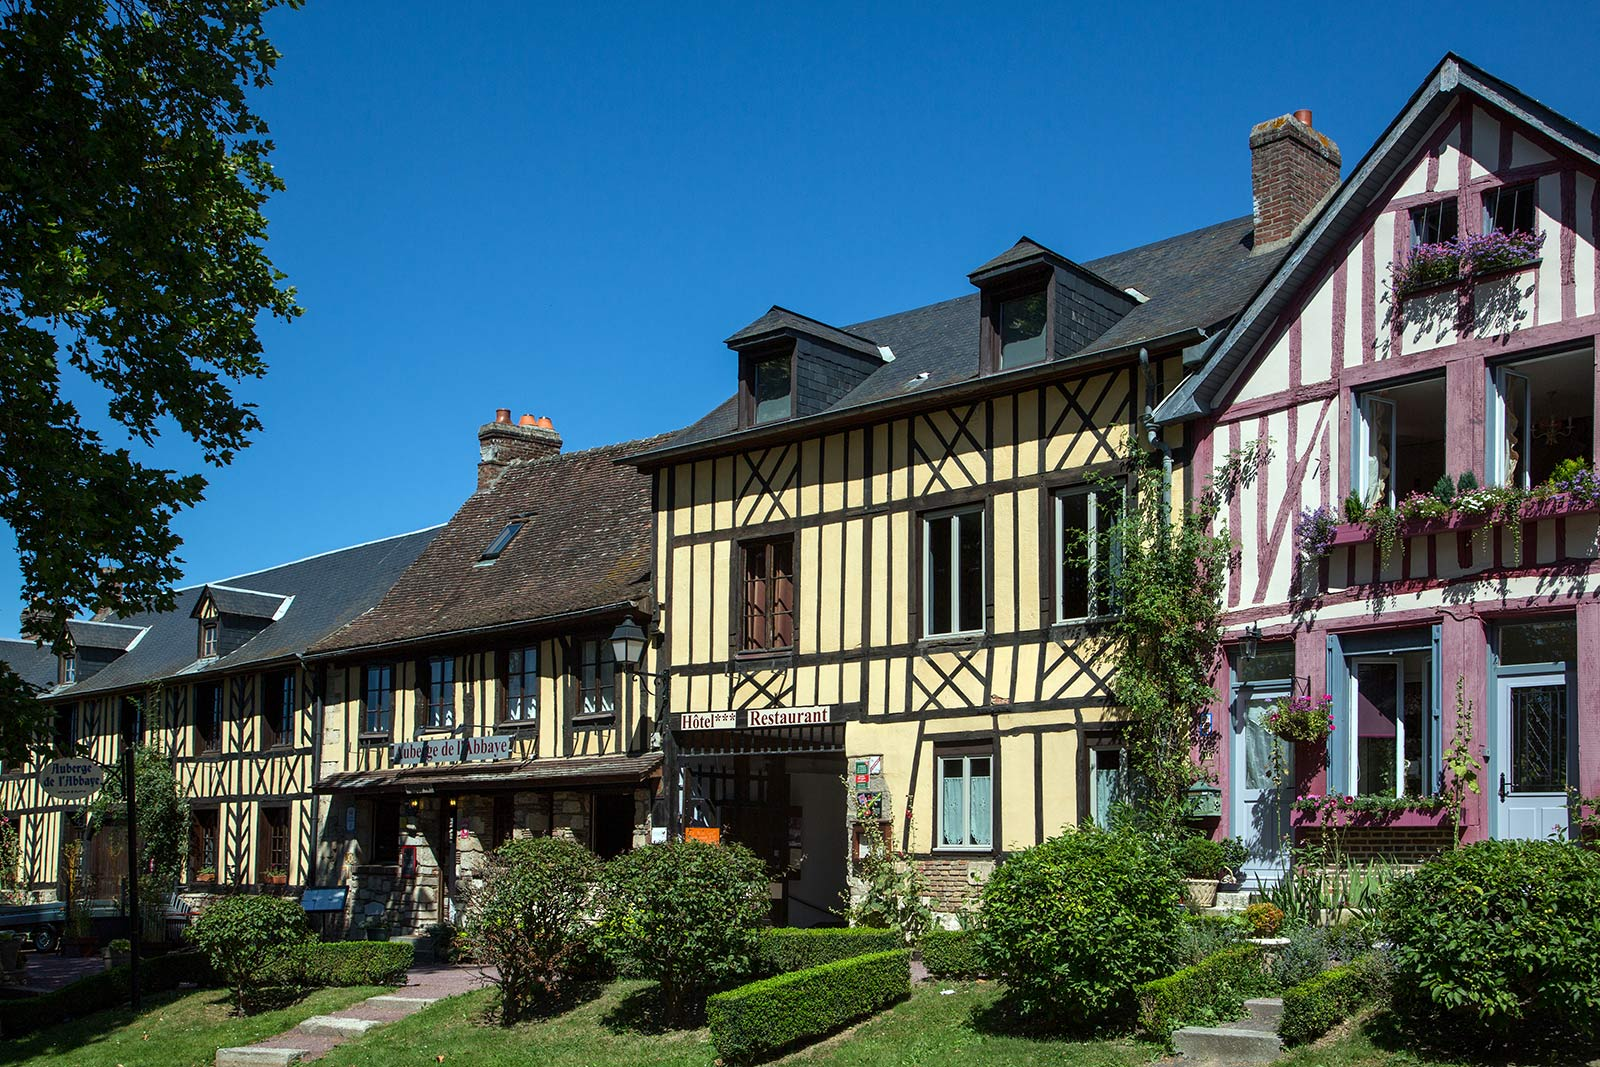 Weather forecast in Le Bec Hellouin Normandy Tourism, France